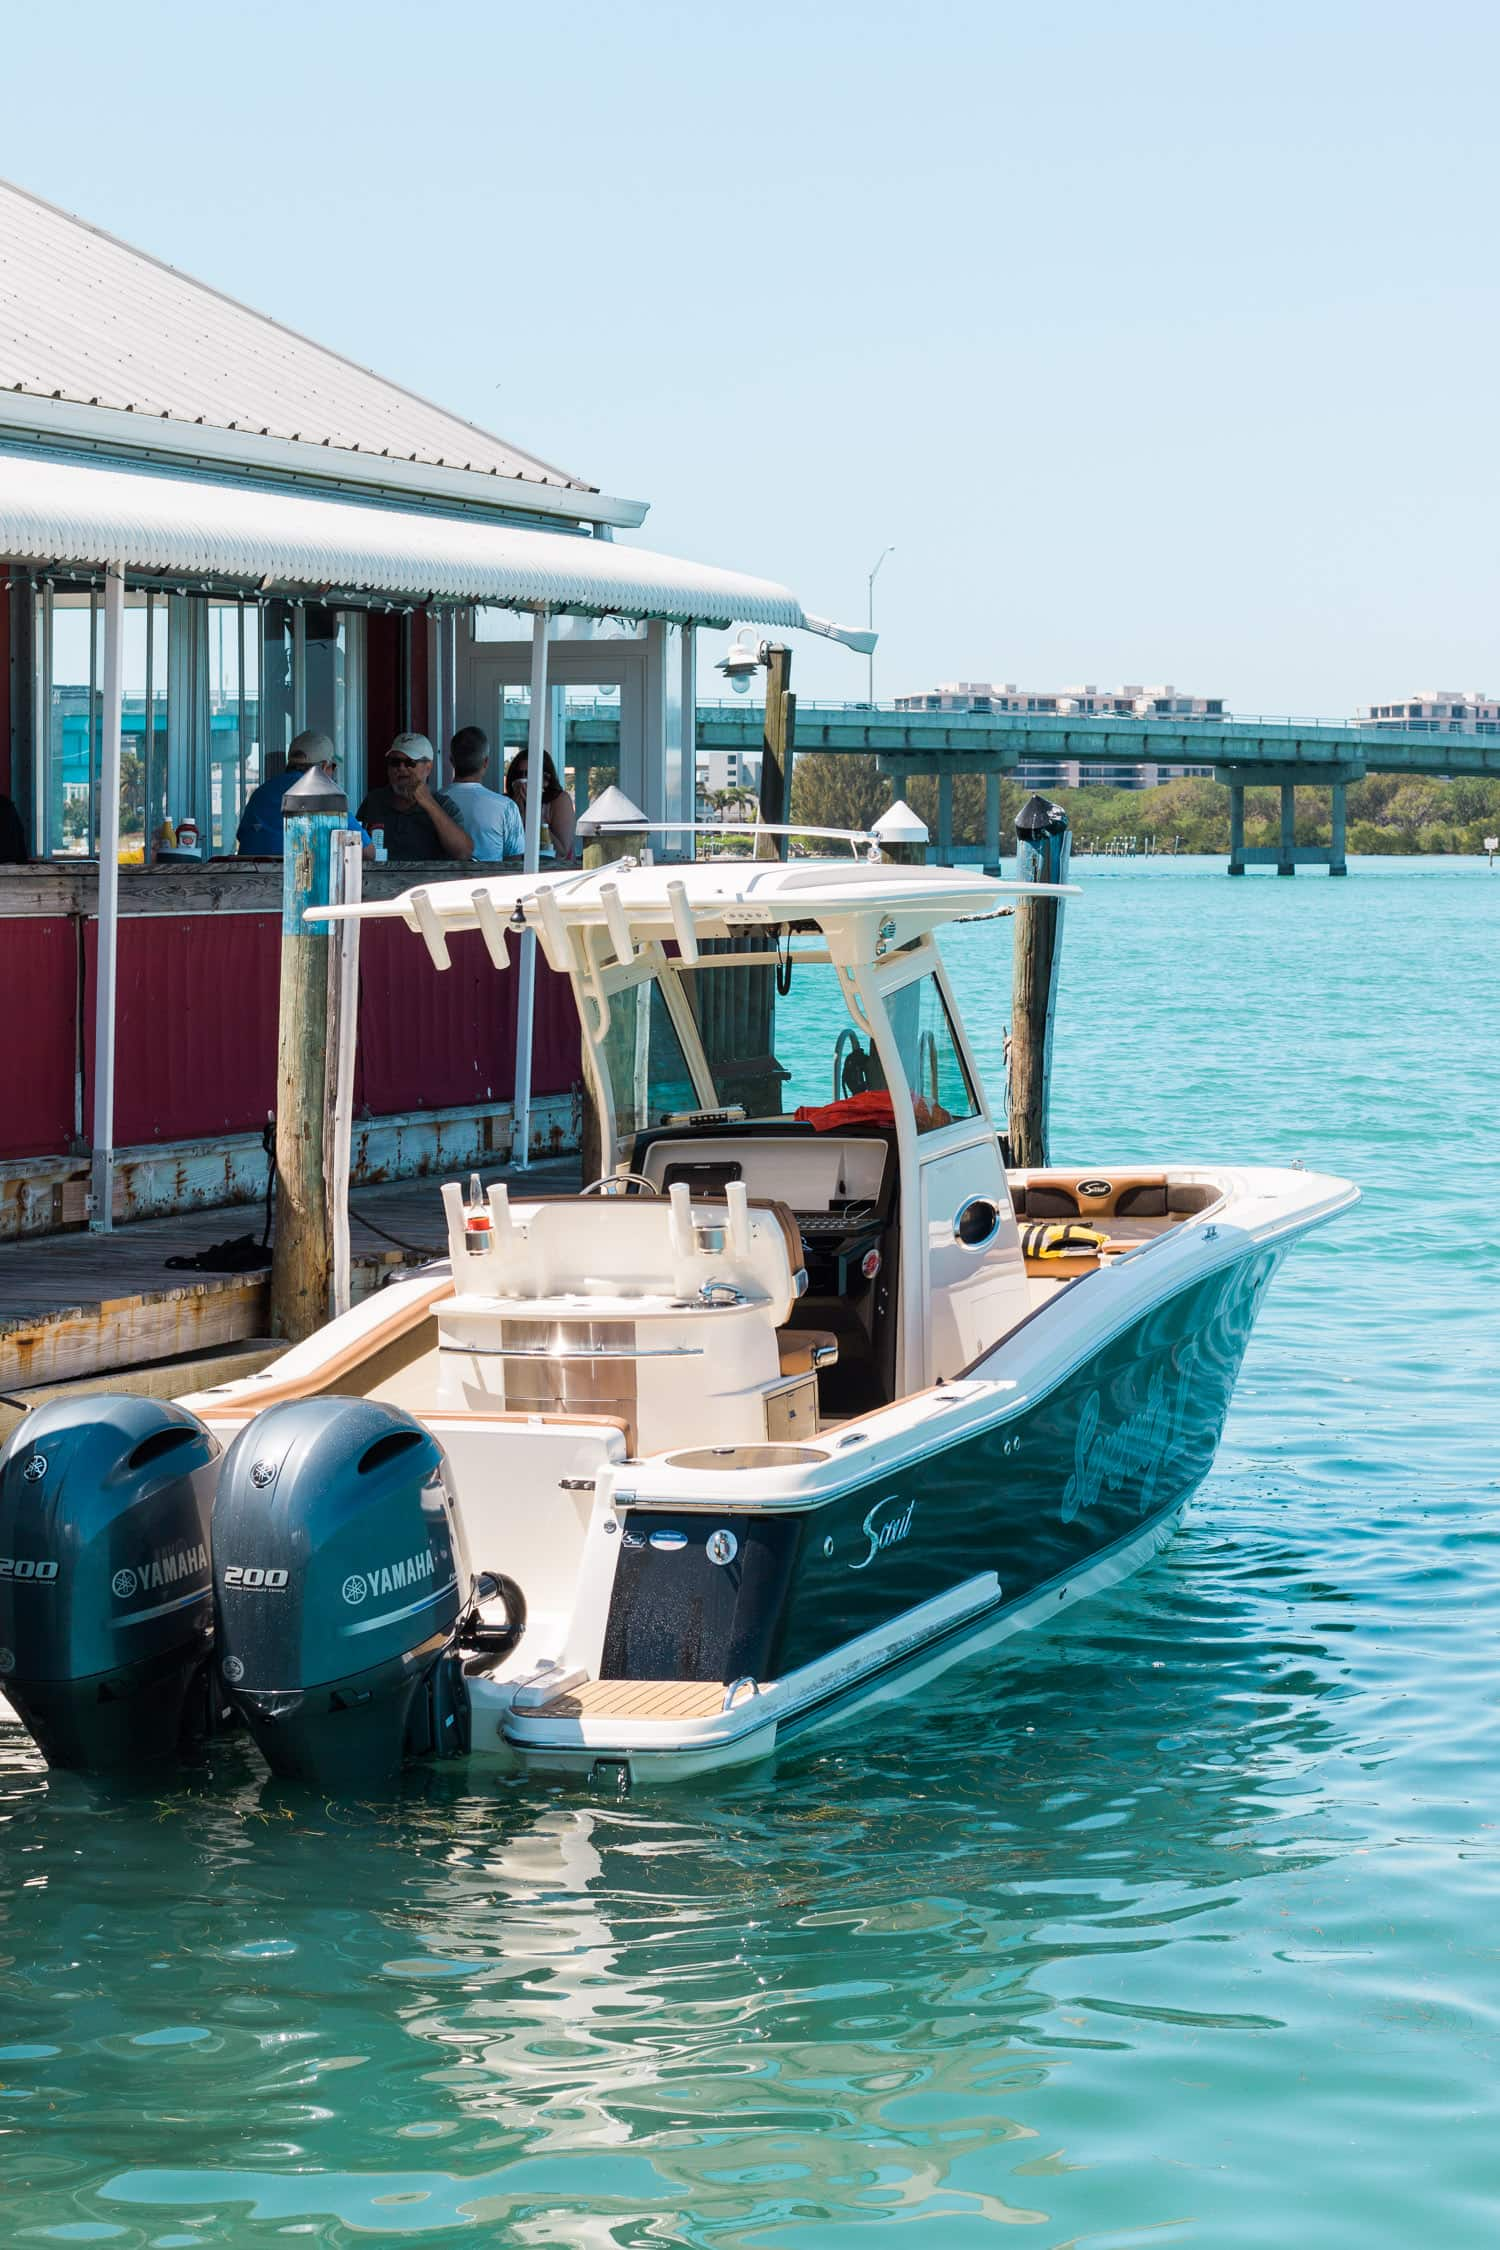 Ride your boat to lunch at The Old Salty Dog restaurant in Longboat Key | How to plan an adventurous weekend getaway in Longboat Key, Florida including a day of boating! #LoveFL sponsored by @visitflorida | Florida travel tips, beach vacation, vacation ideas, vacation goals, travel blogger Ashley Brooke Nicholas, Florida travel guide, Longboat Key travel guide, Sarasota travel guide, beautiful beaches, boating, affordable travel, US travel, summer vacation, spring break ideas